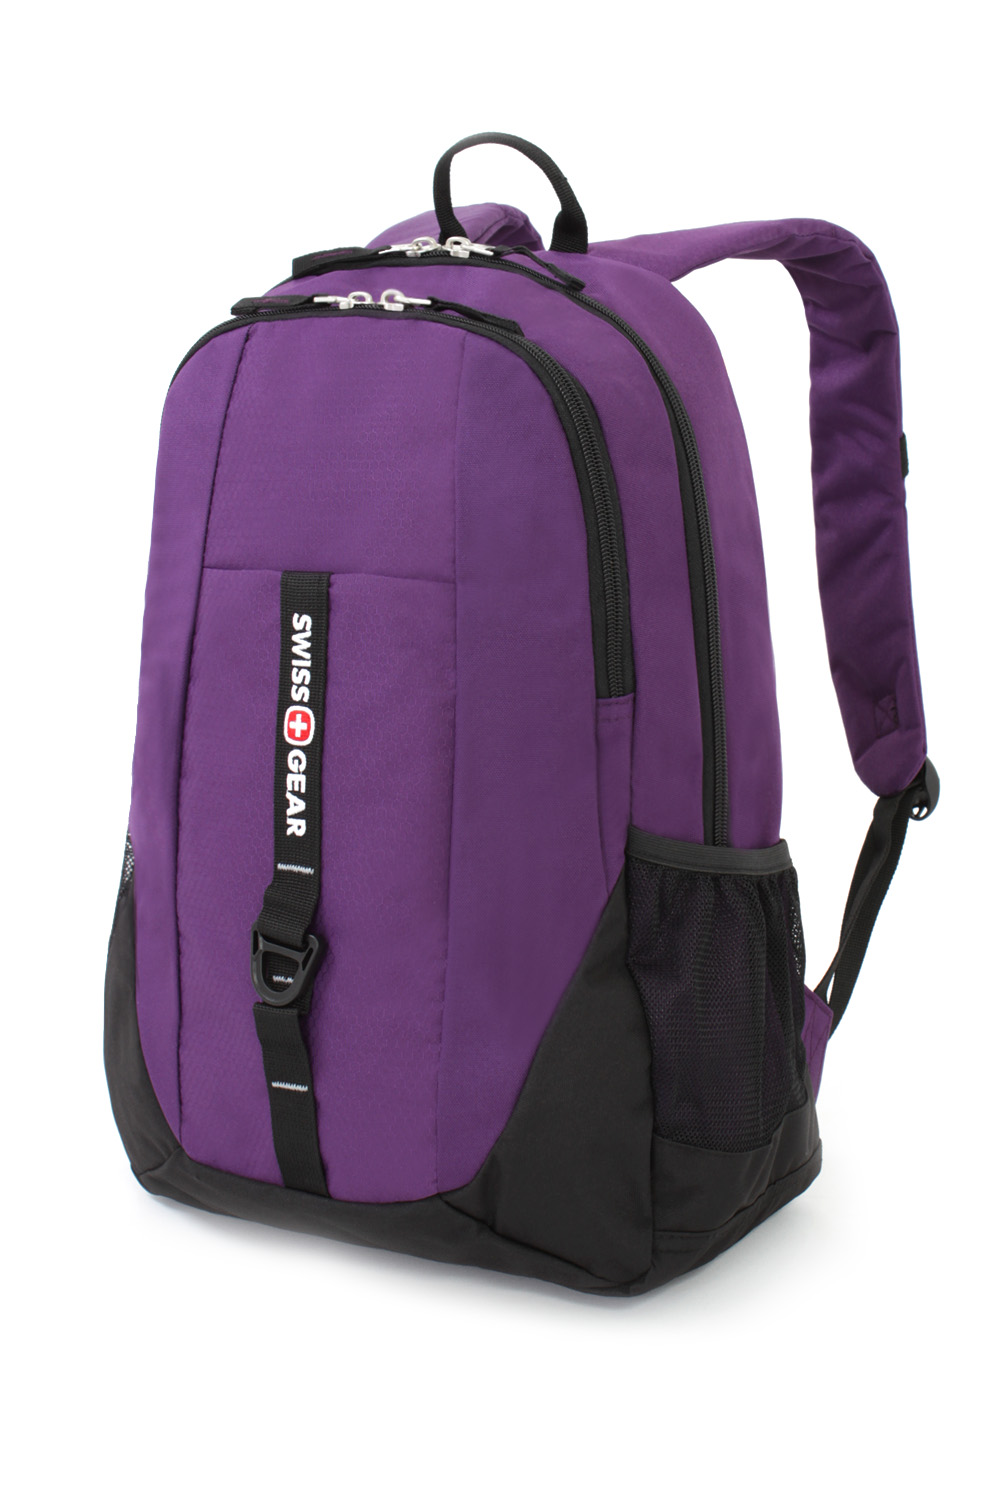 SWISSGEAR 6639 Backpack - Purple